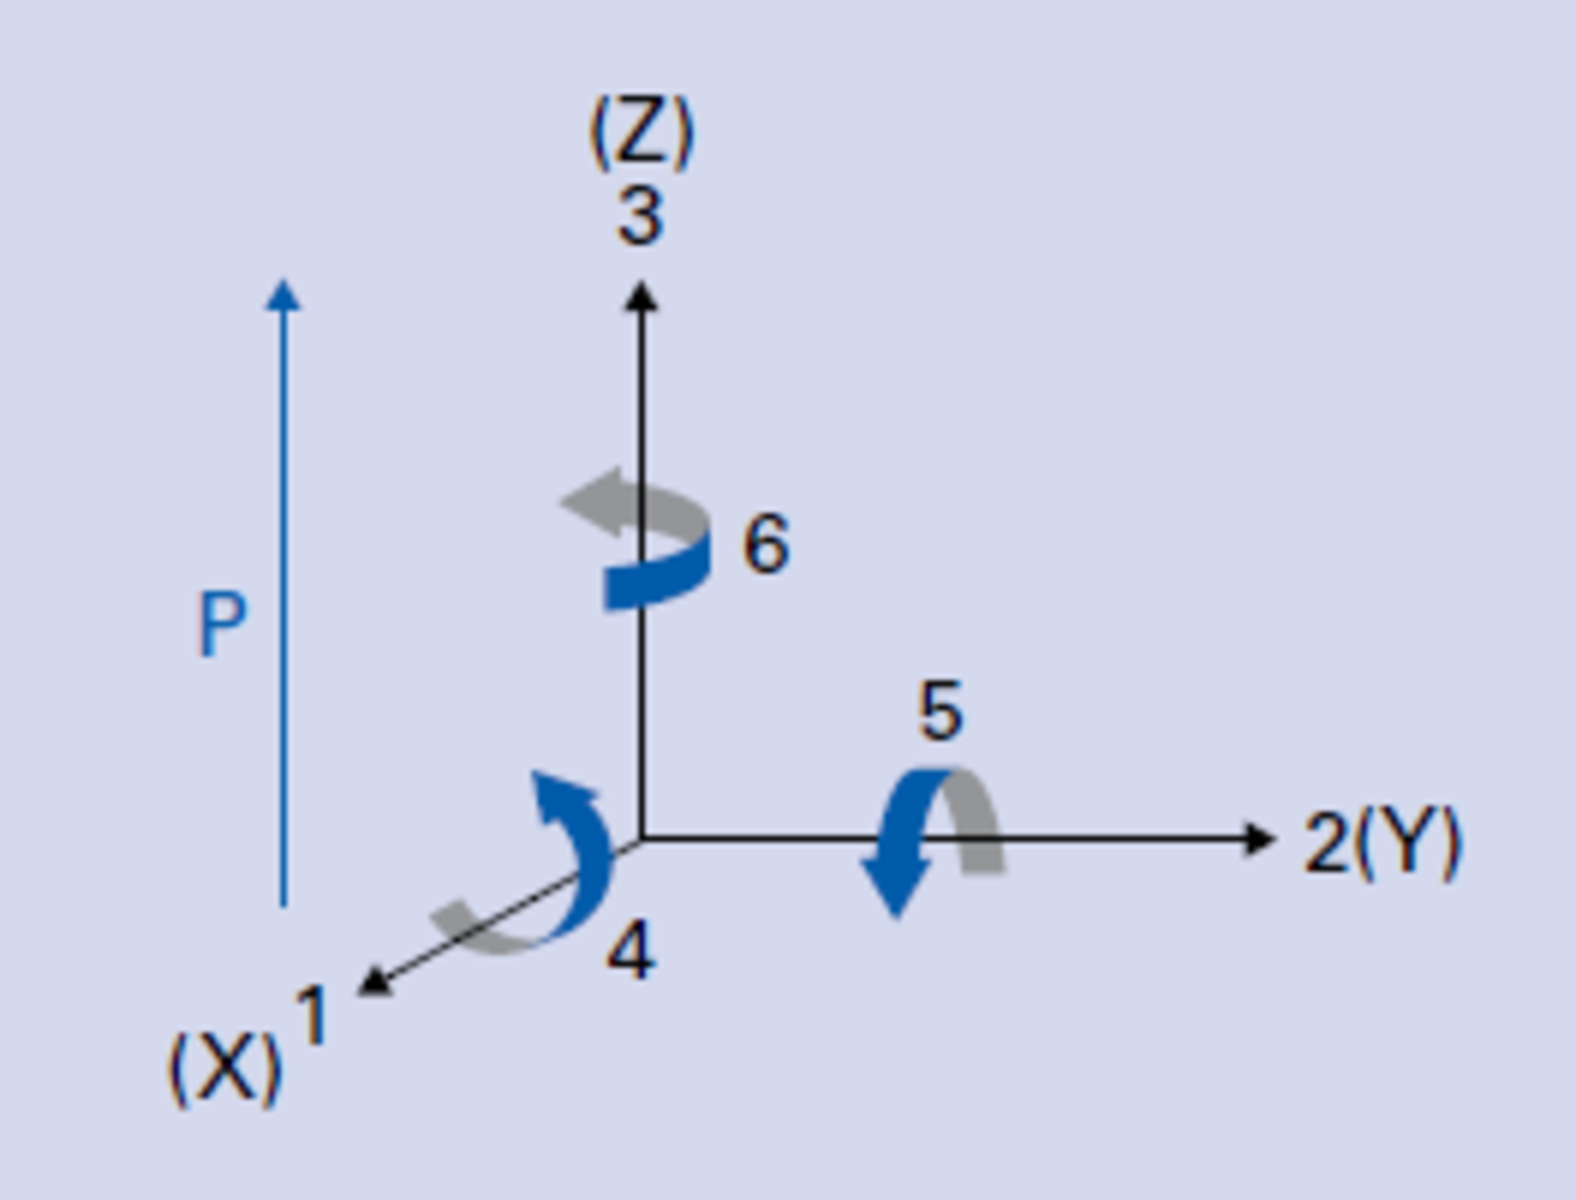 Fundamentals Of Piezo Technology Describes The Basic Concepts Direct Current Dc Electrical Circuits Orthogonal System To Describe Properties A Polarized Ceramic Axis 3 Is Direction Polarization